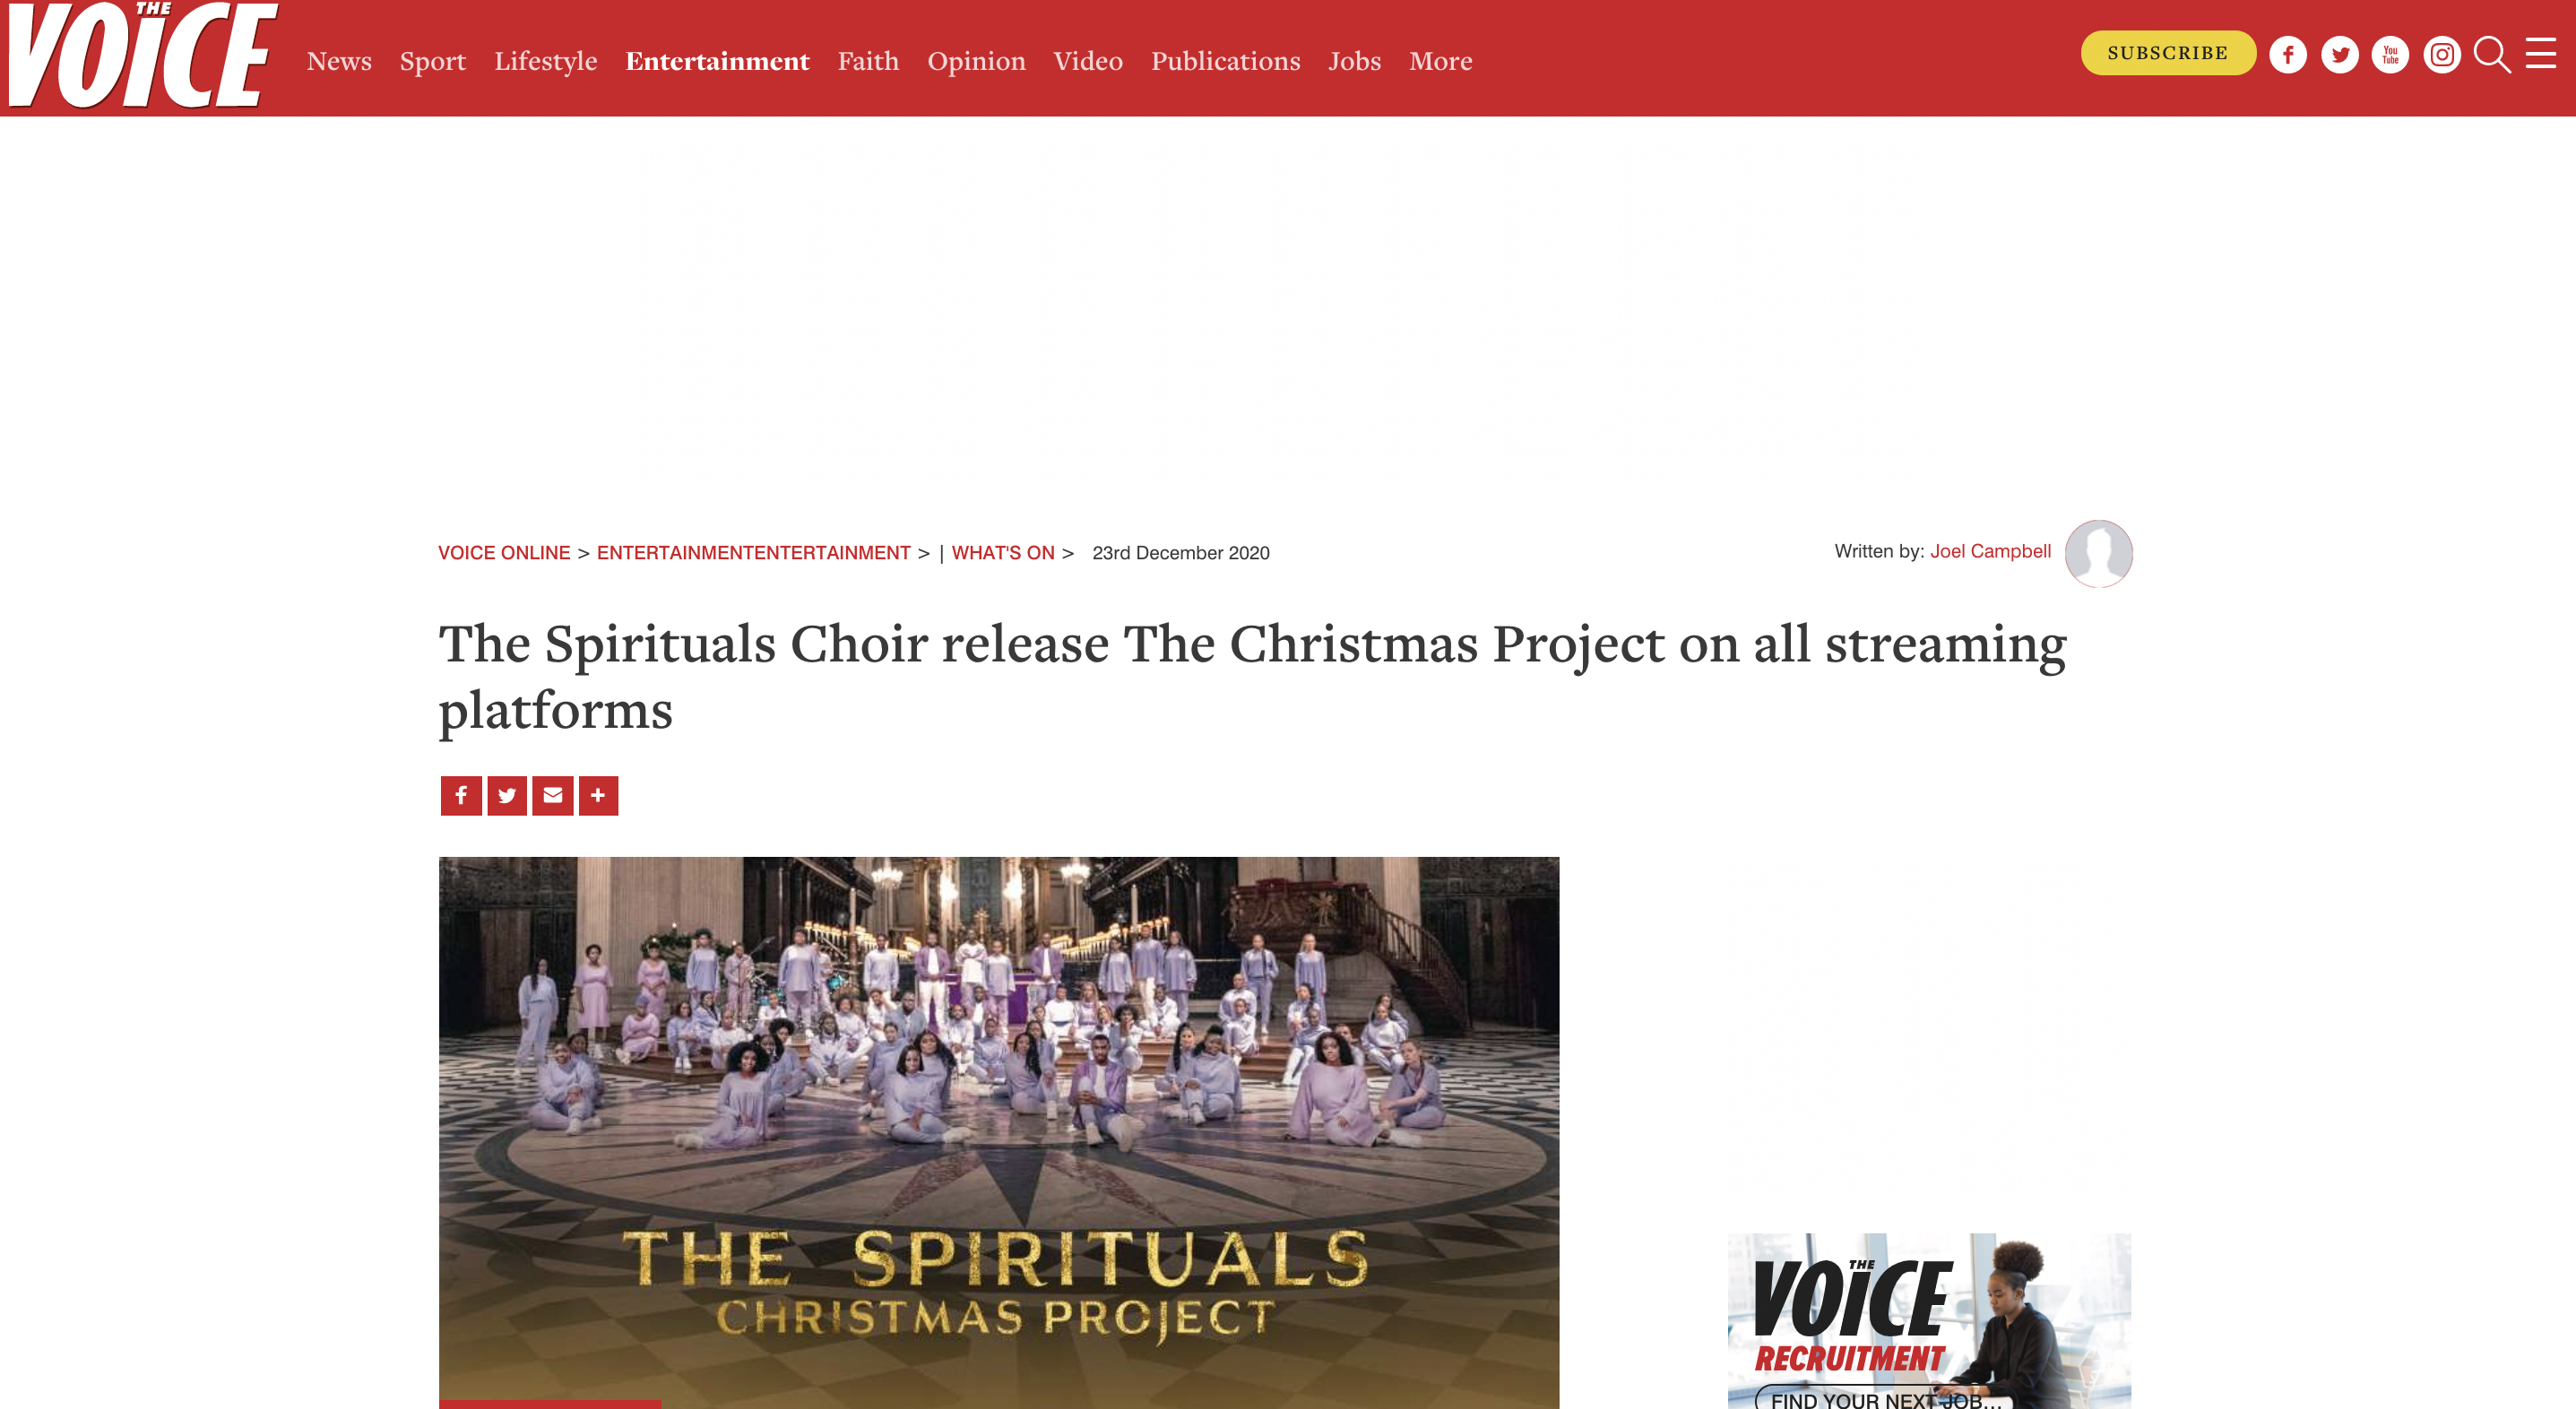 the spirituals in the voice